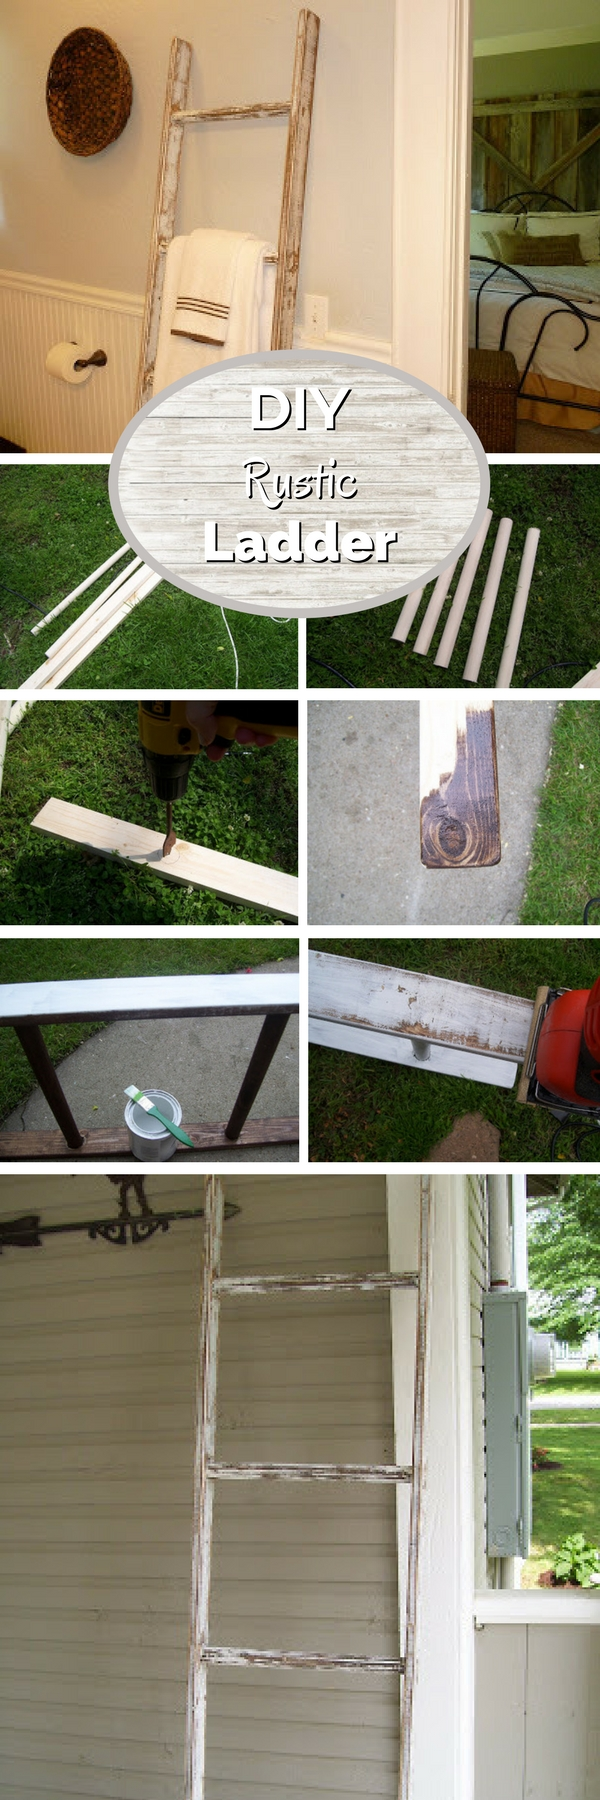 13. DIY Rustic Ladder